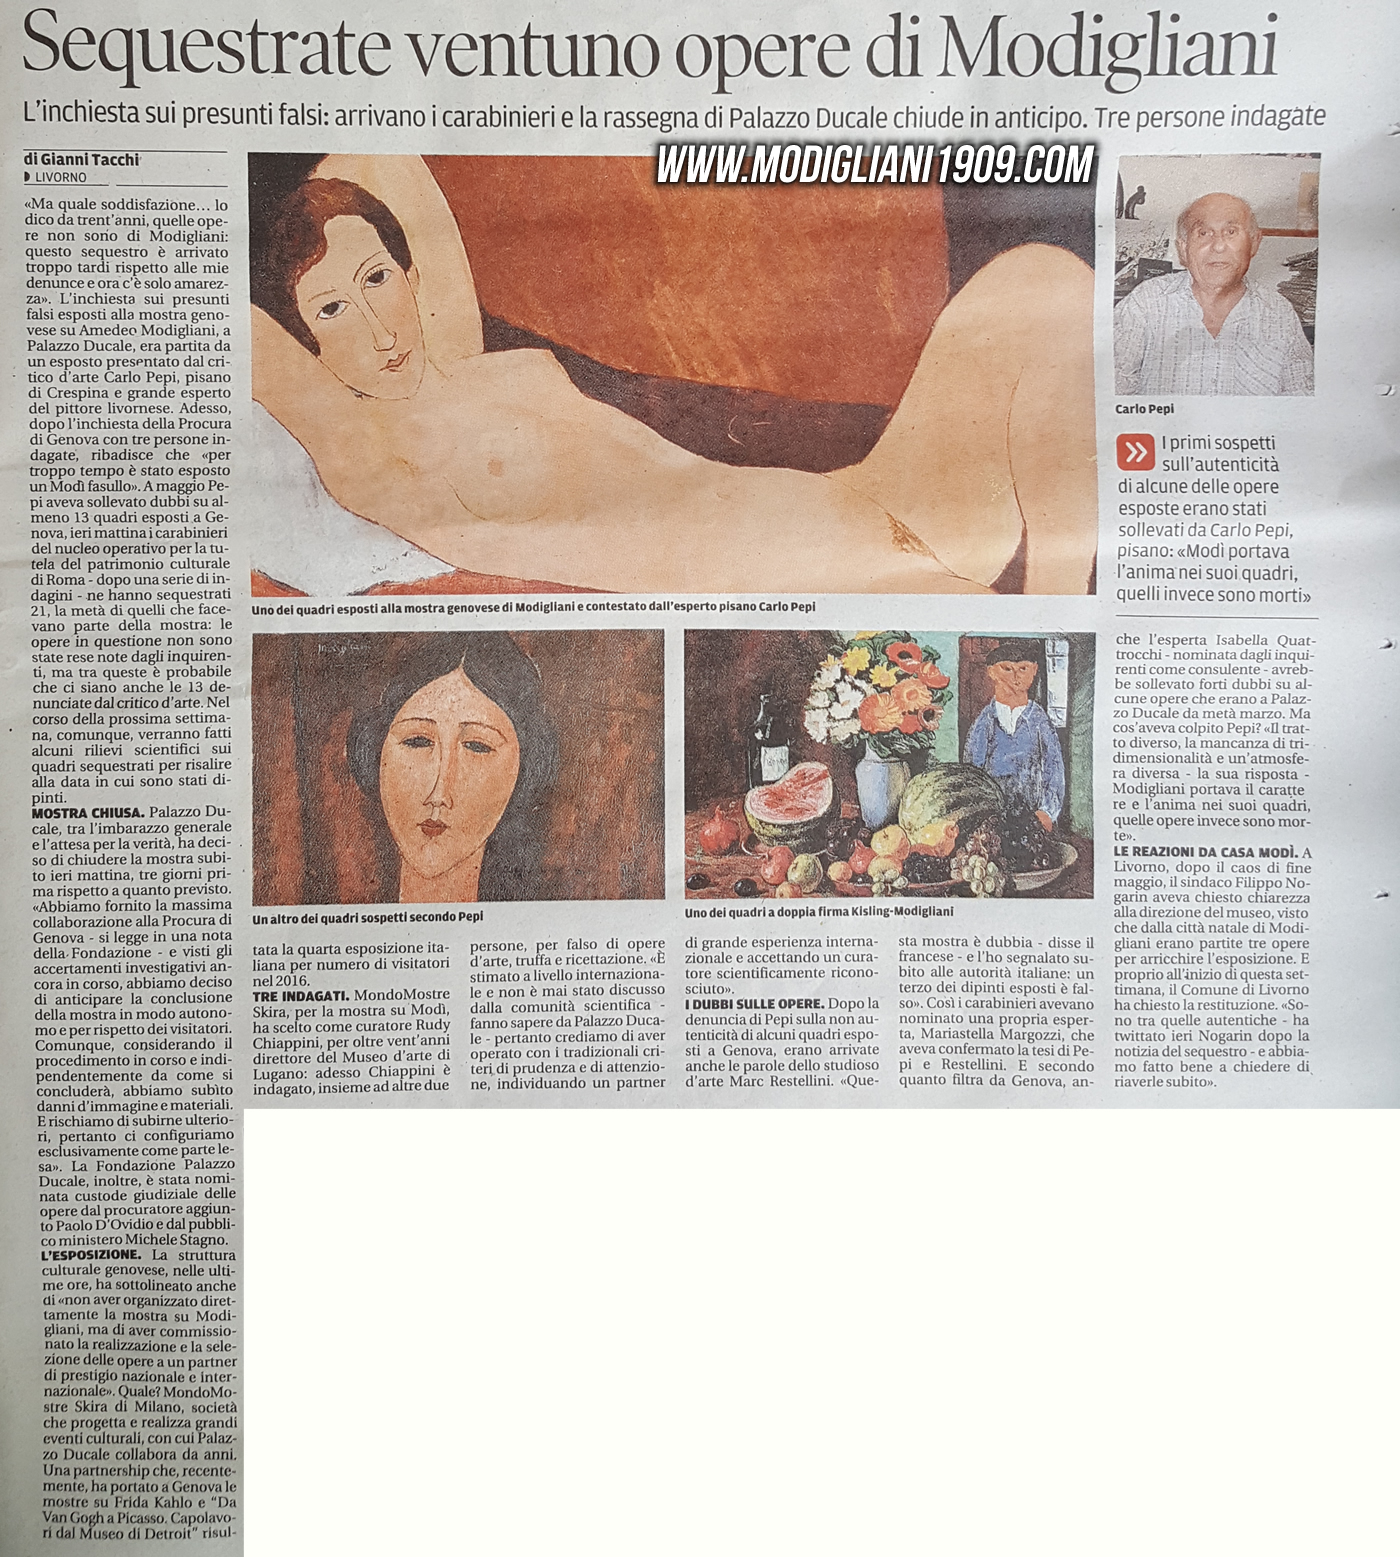 sequestrate 21 opere di Modigliani - Il Tirreno